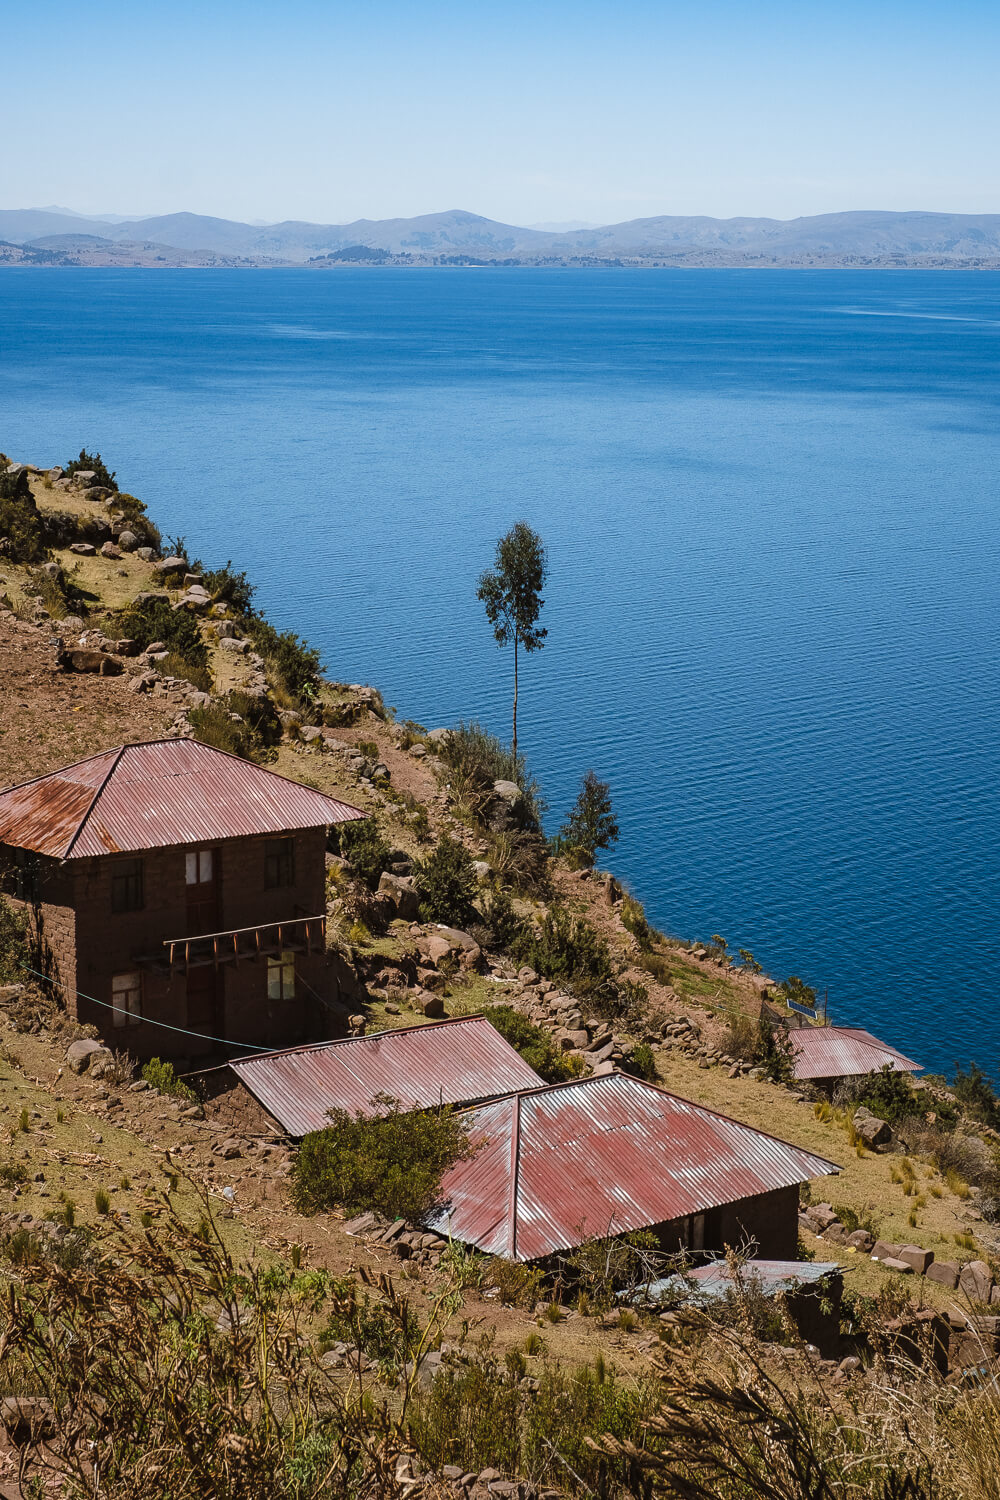 """Views from Taquile Island. Travel photography and guide by © Natasha Lequepeys for """"And Then I Met Yoko"""". #peru #laketiticaca #homestay #photoblog #travelblog #fujifilm"""